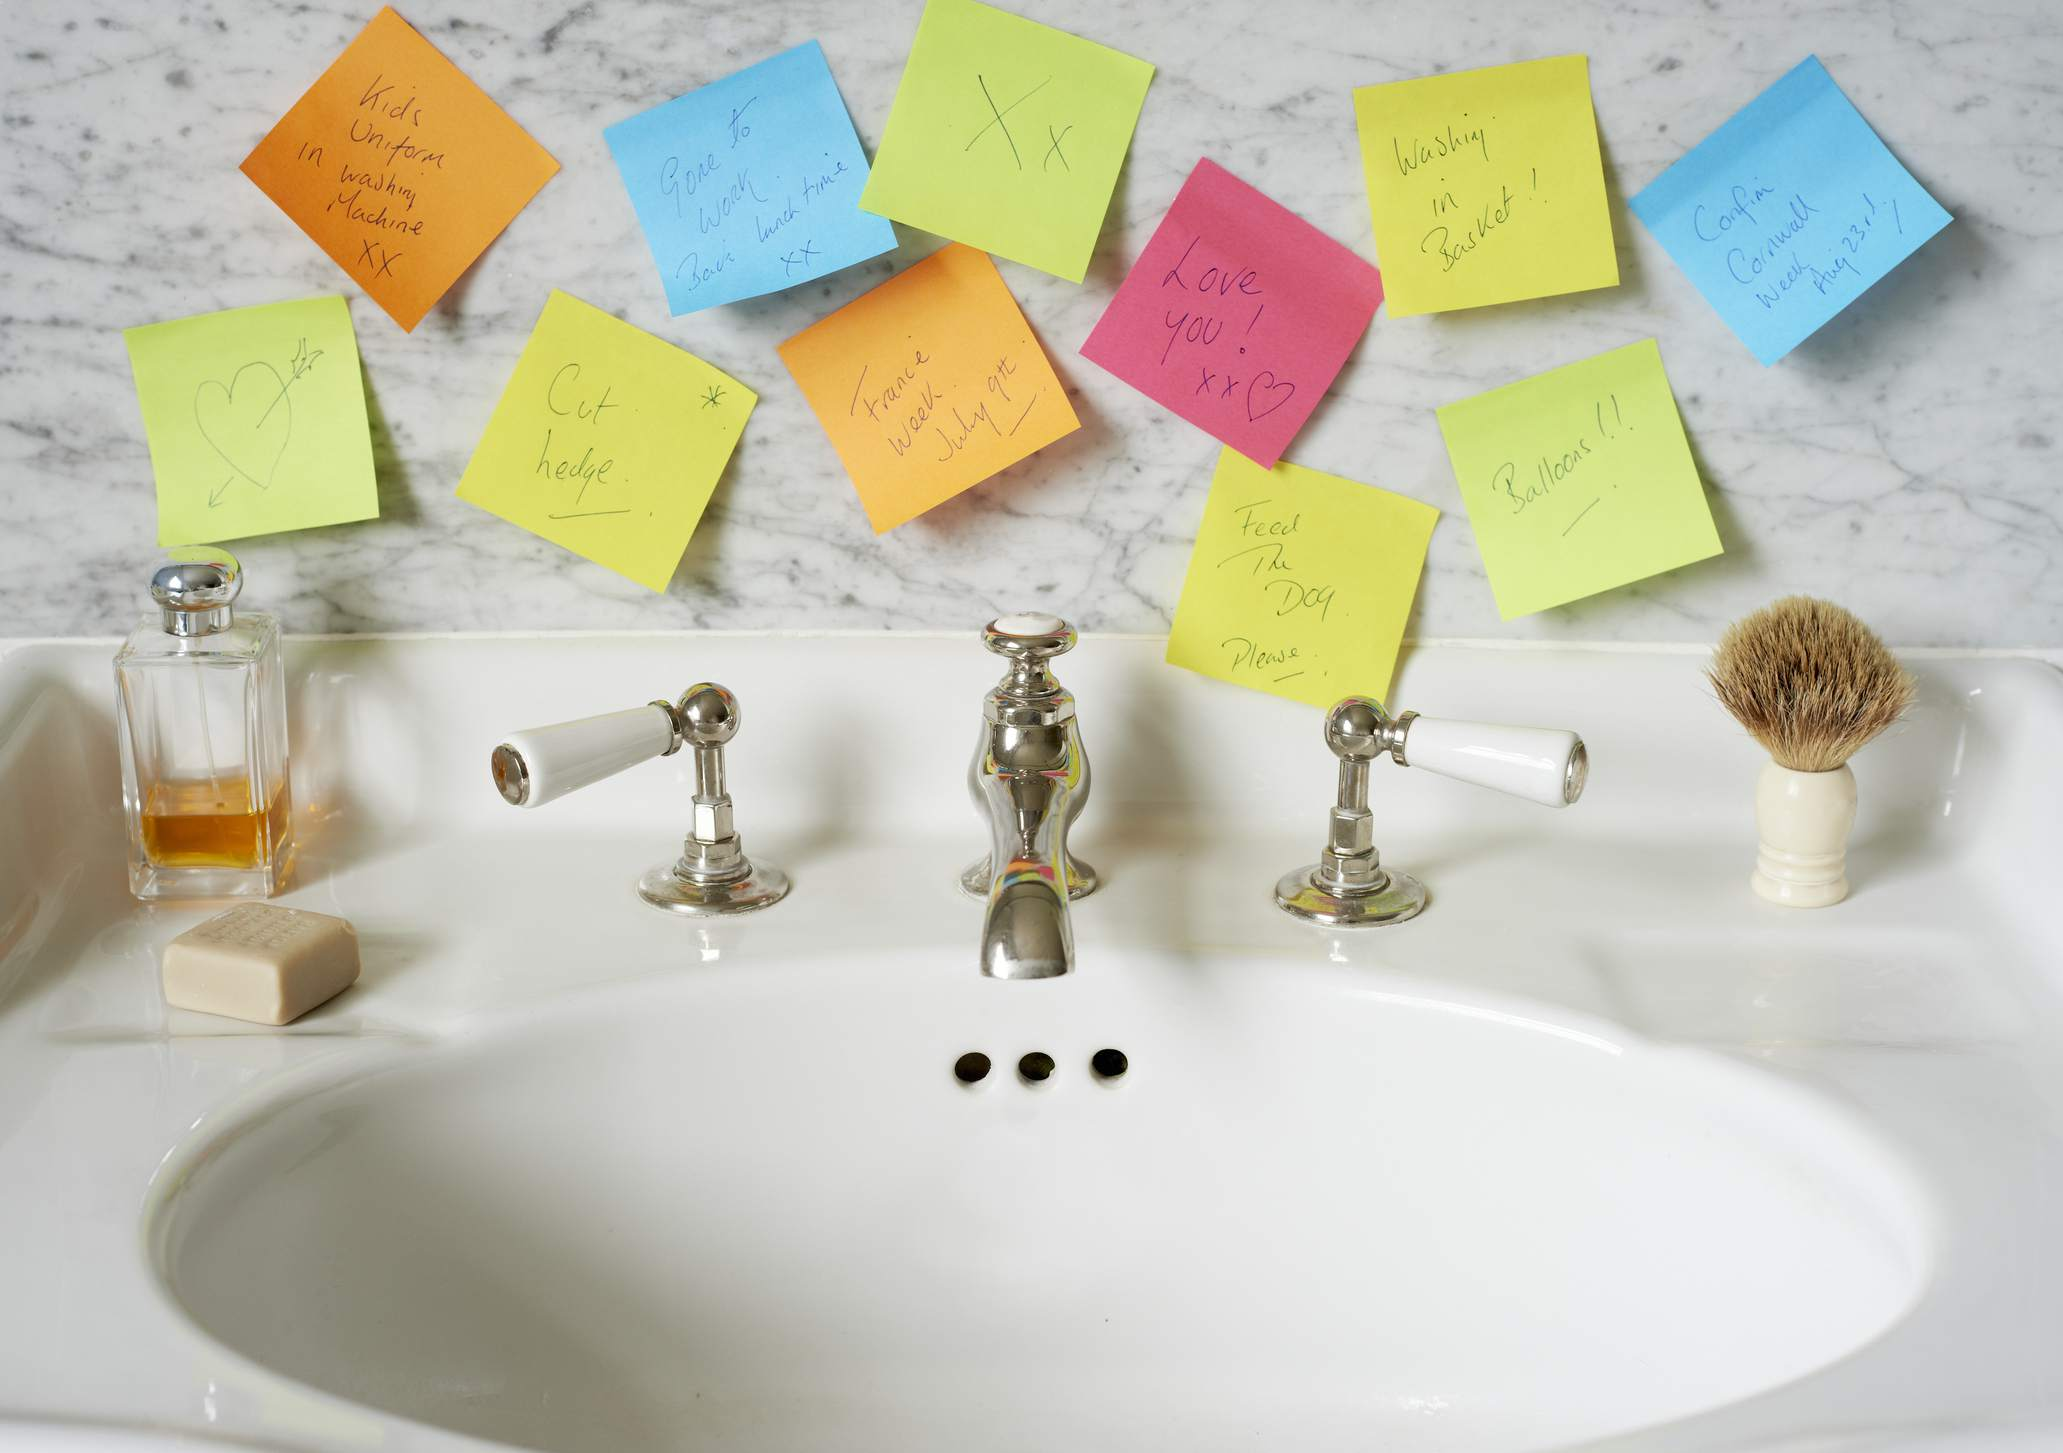 Sticky note reminders above a bathroom sink